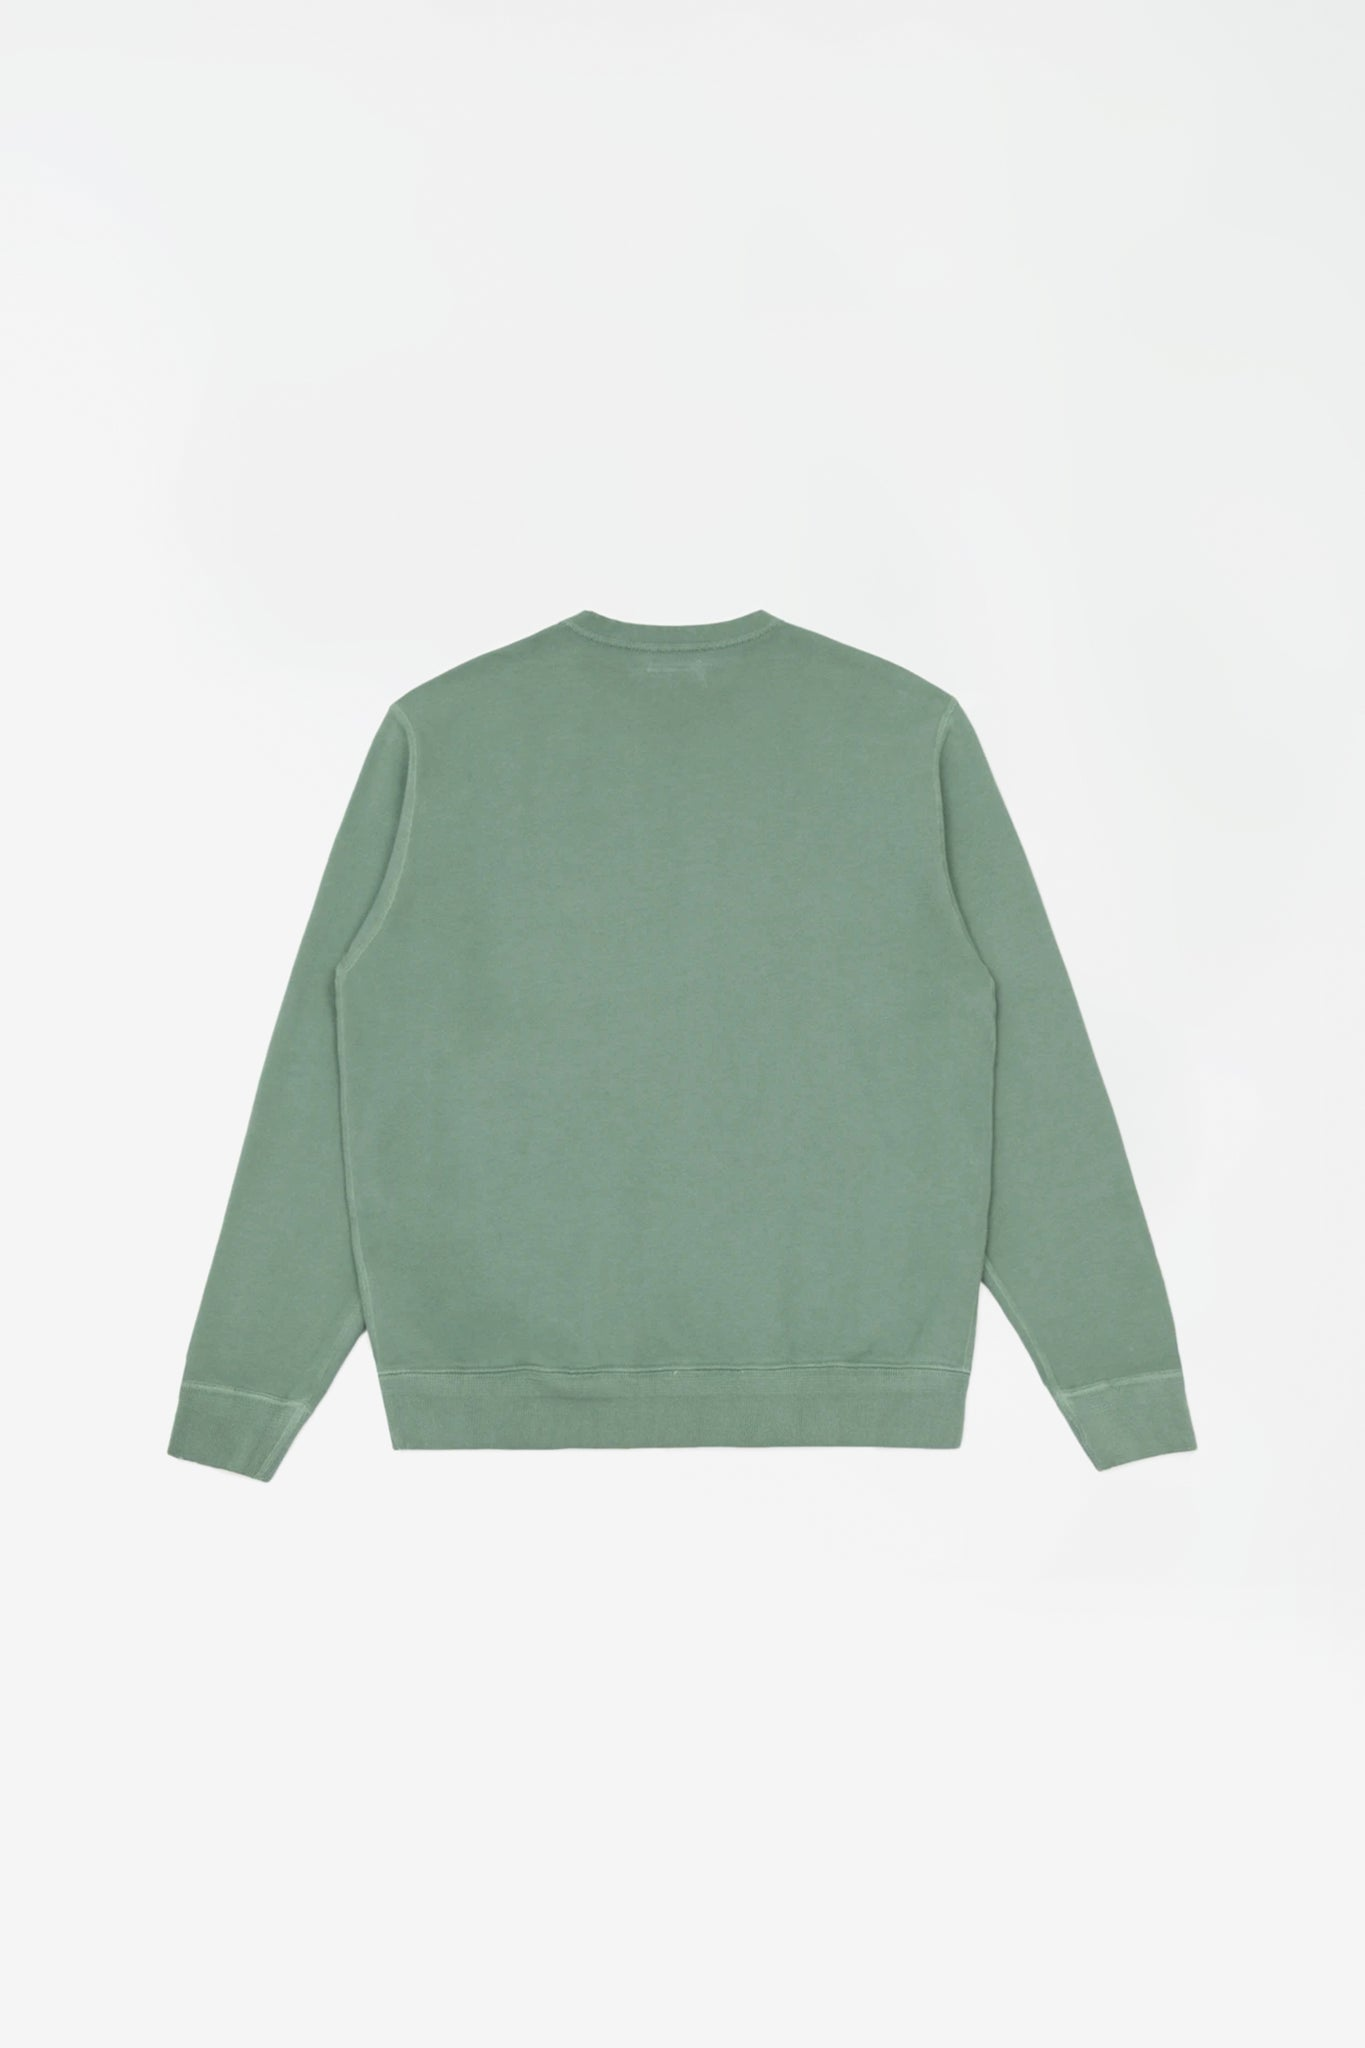 44 Fleece sweatshirt ez sage